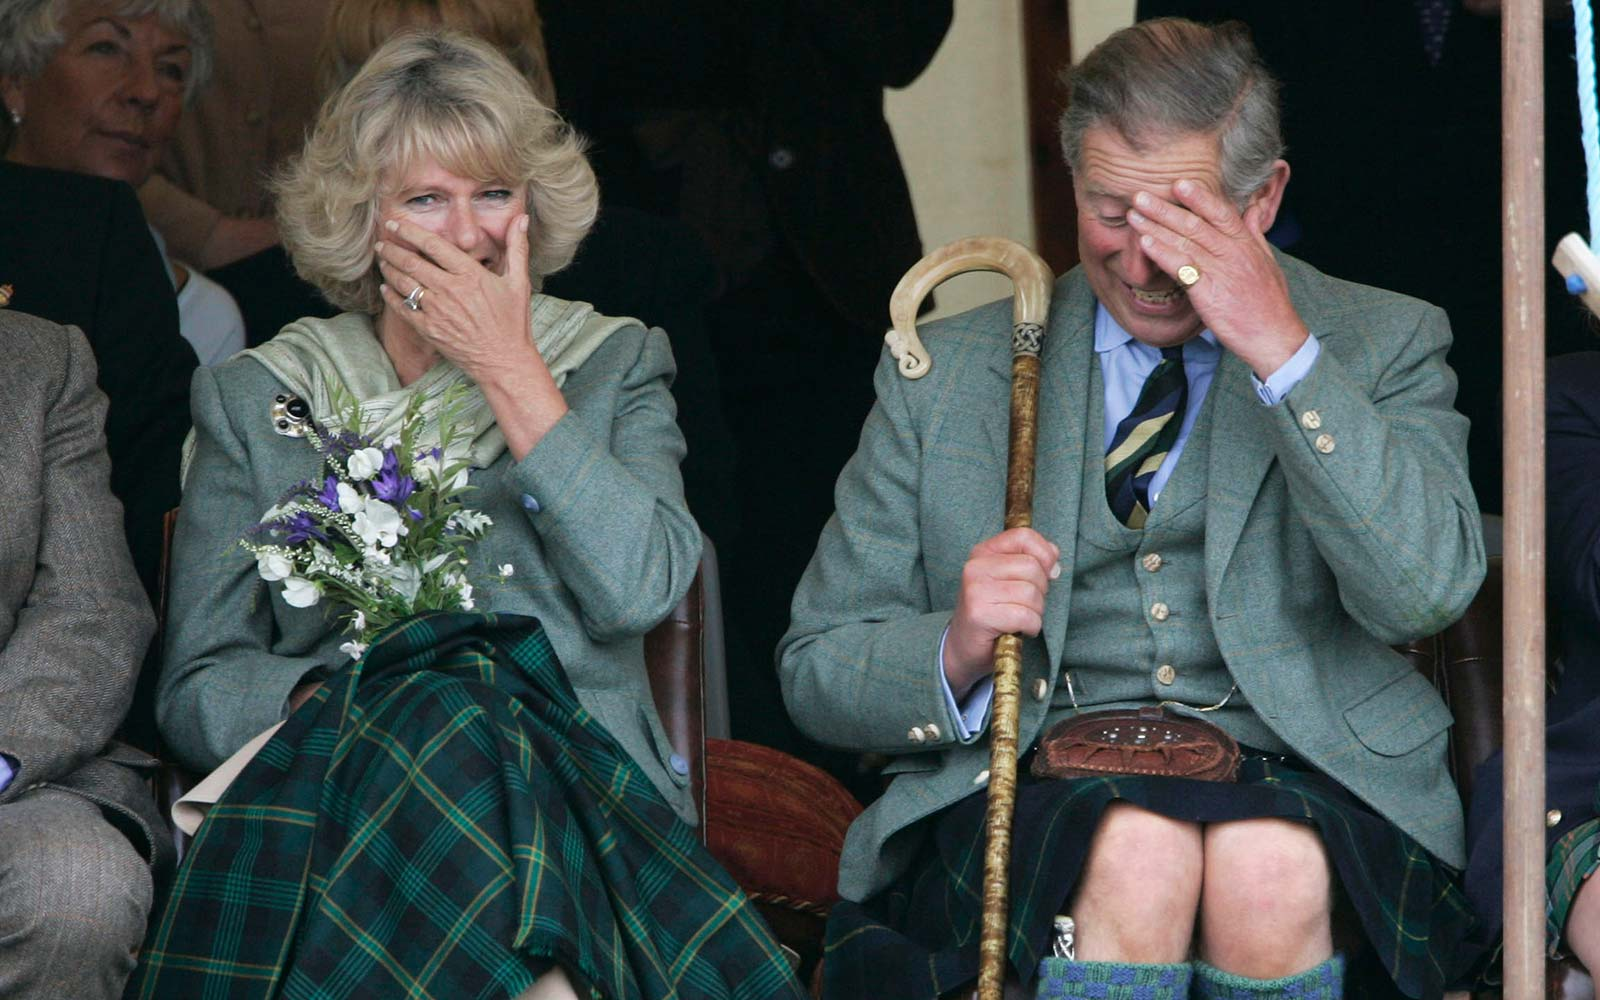 Prince Charles, the Prince of Wales, and his wife Camilla Bowles, the Duchess of Cornwall laugh UK